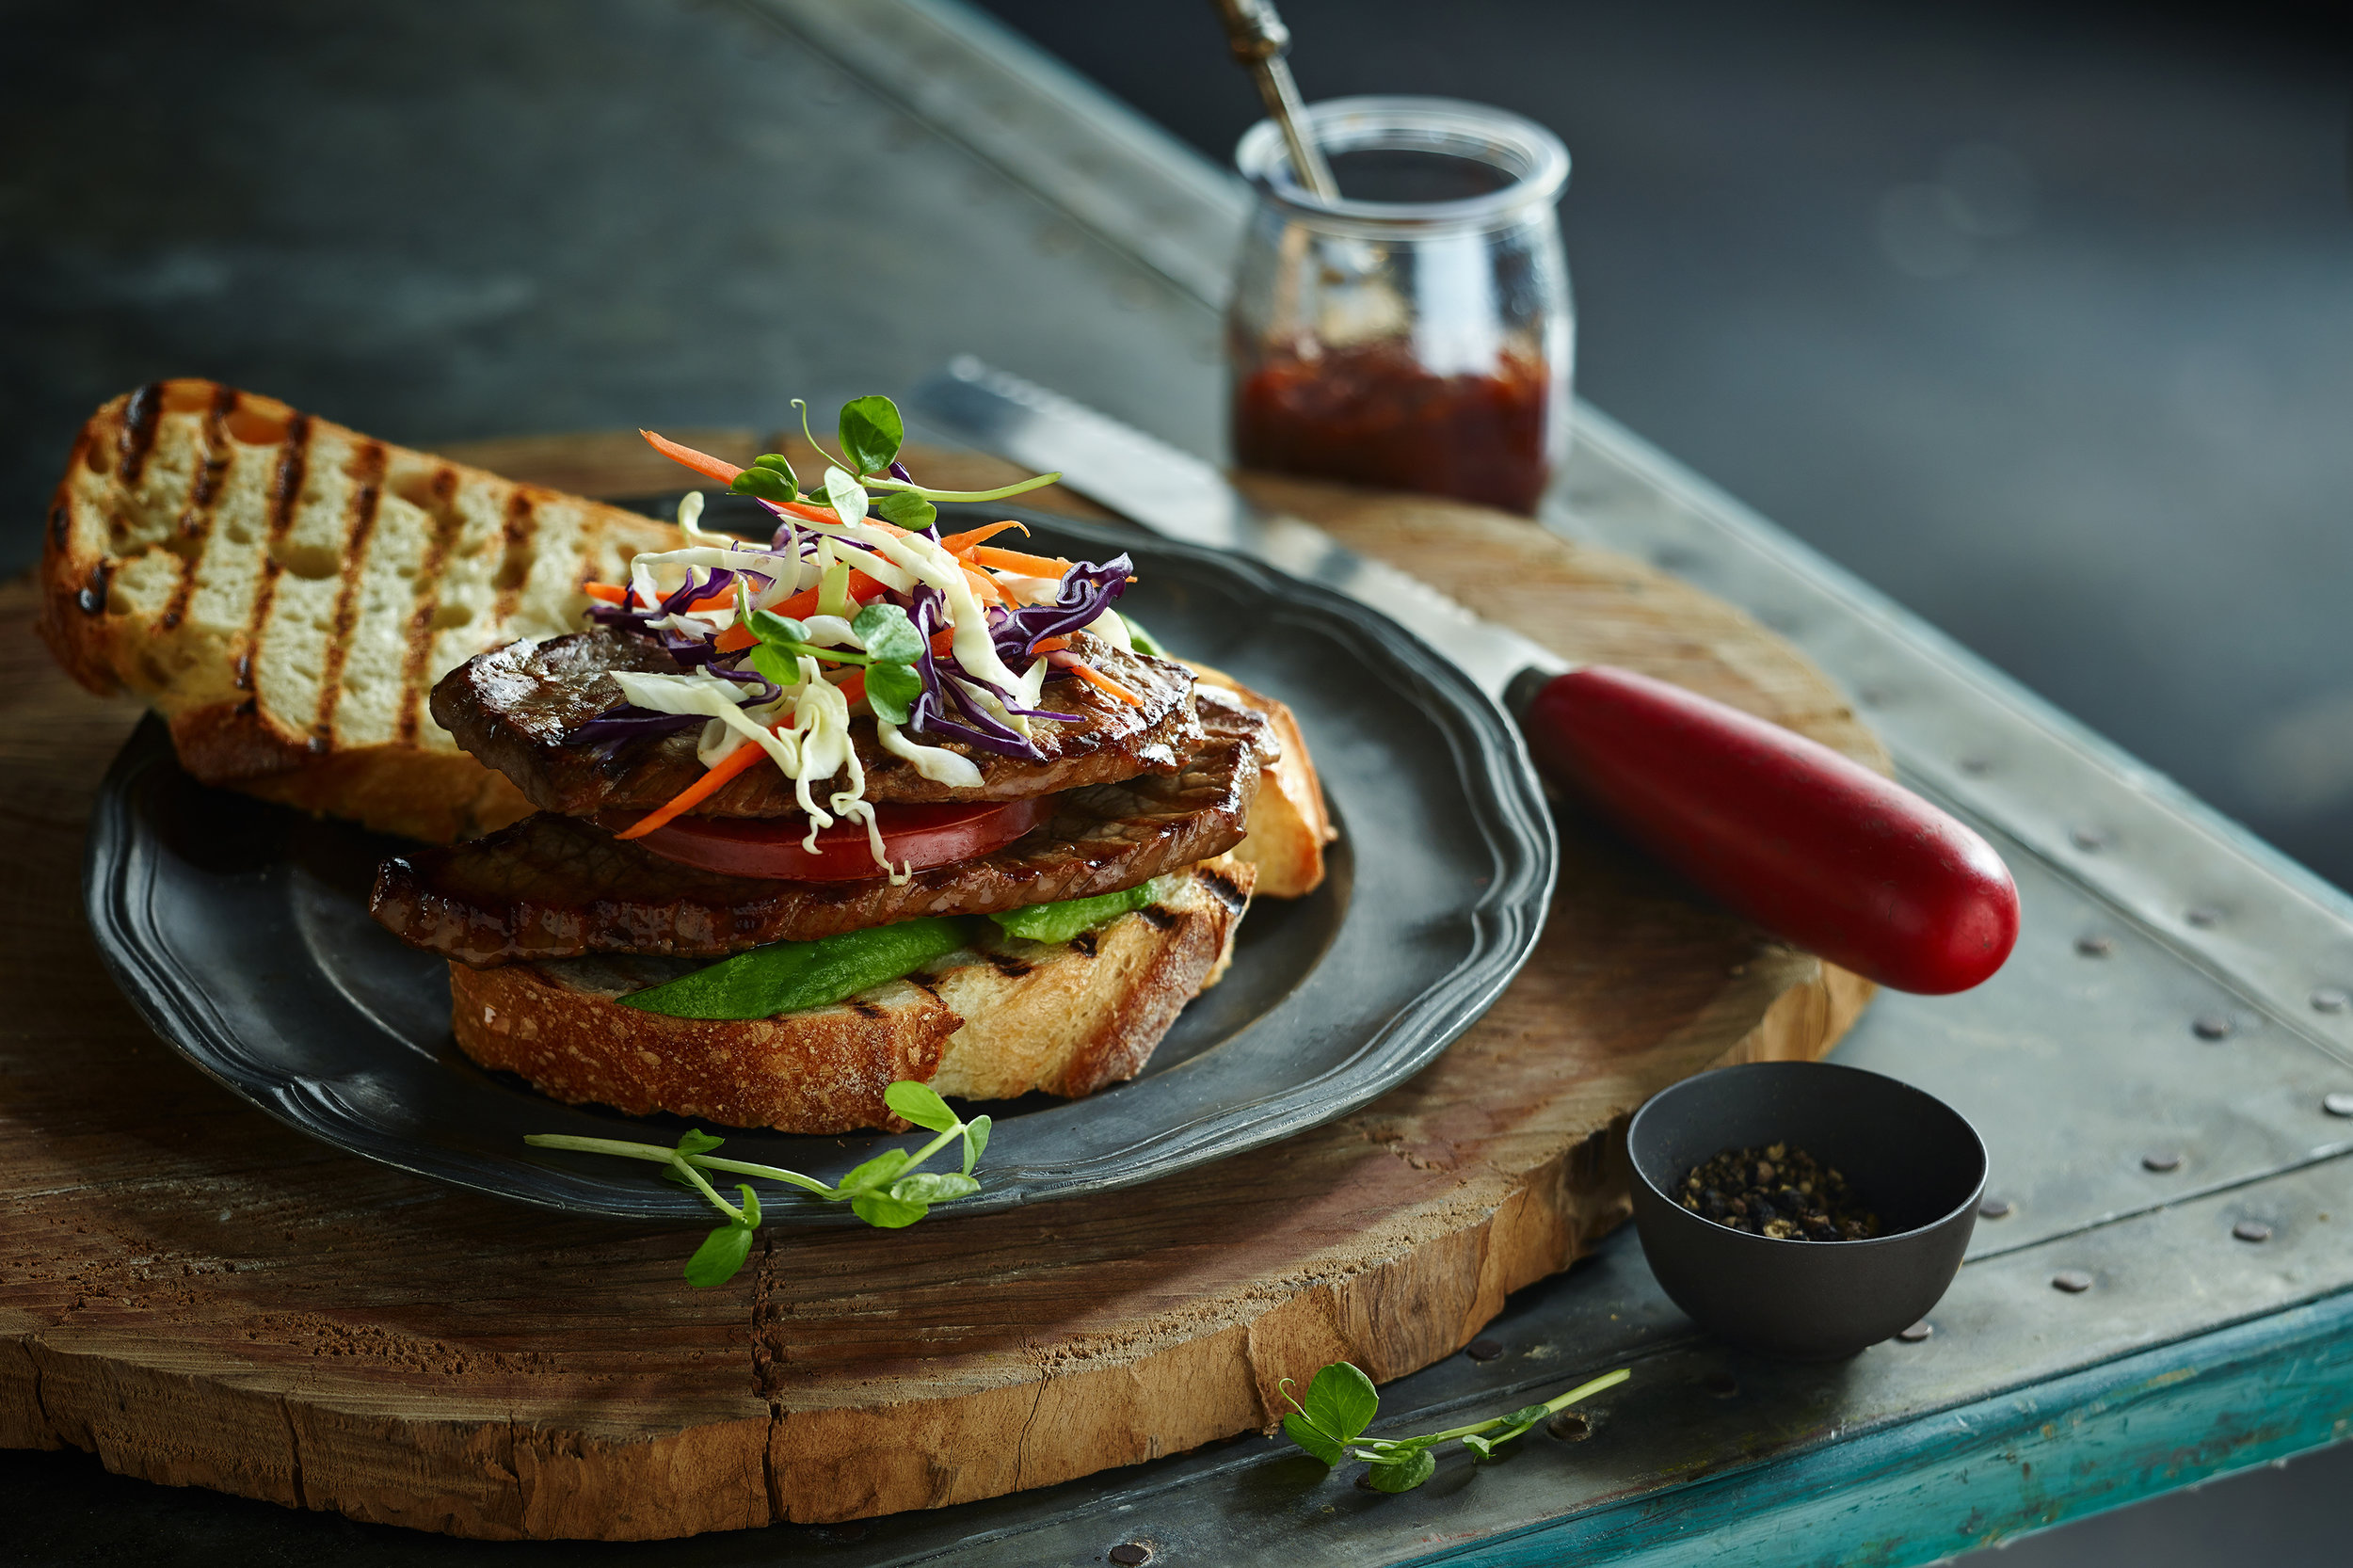 20140820_steak sandwichCropRT2.jpg